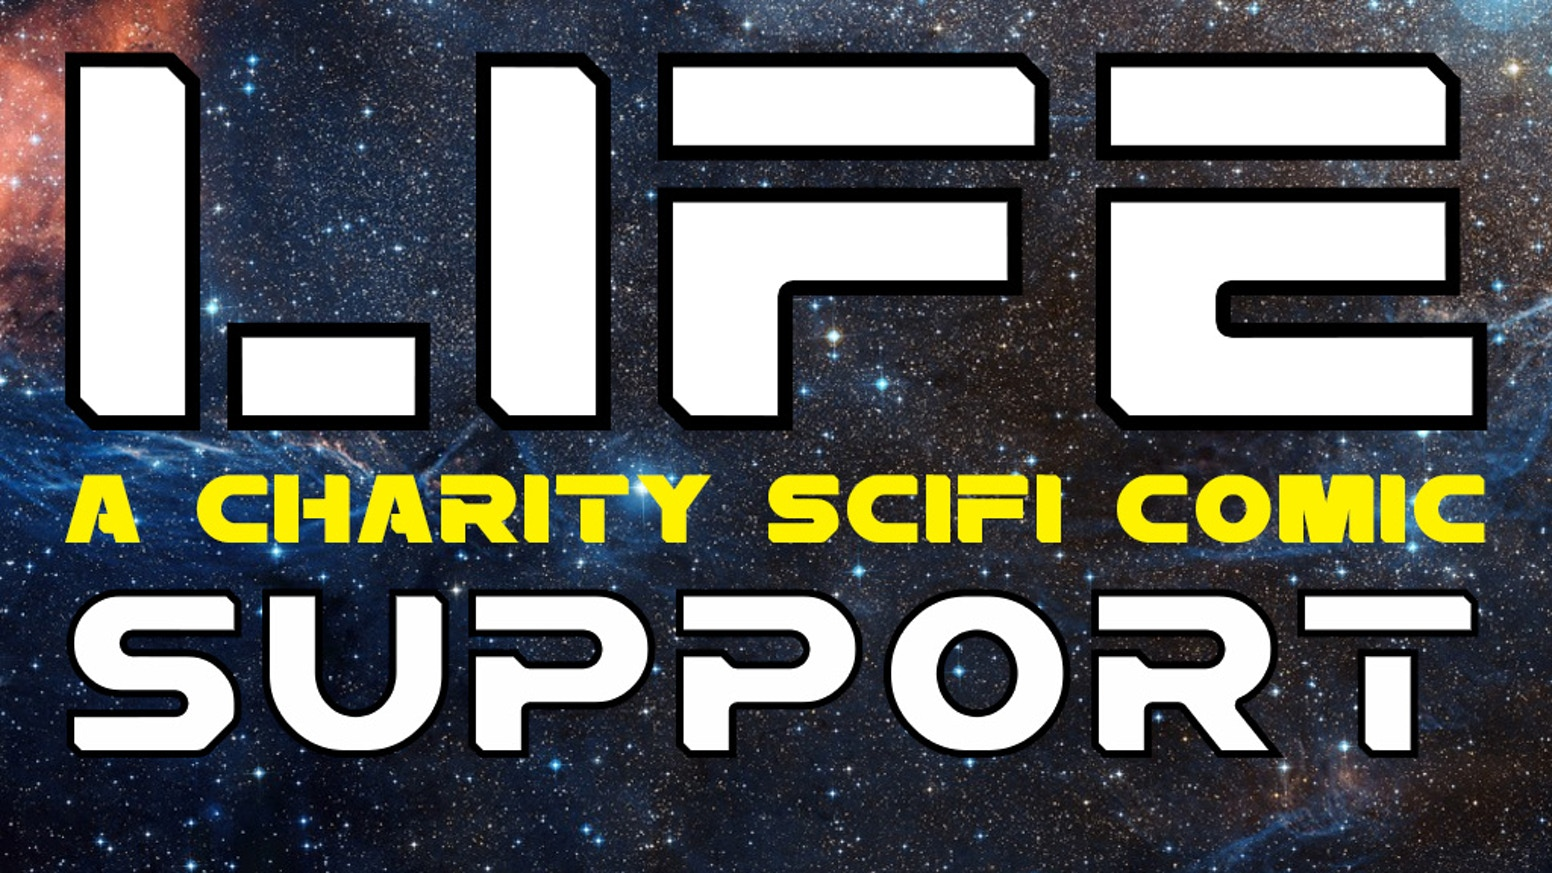 Help us print our SciFi comic which will be sold to raise funds for charity. Features the work of new and established comic creators.